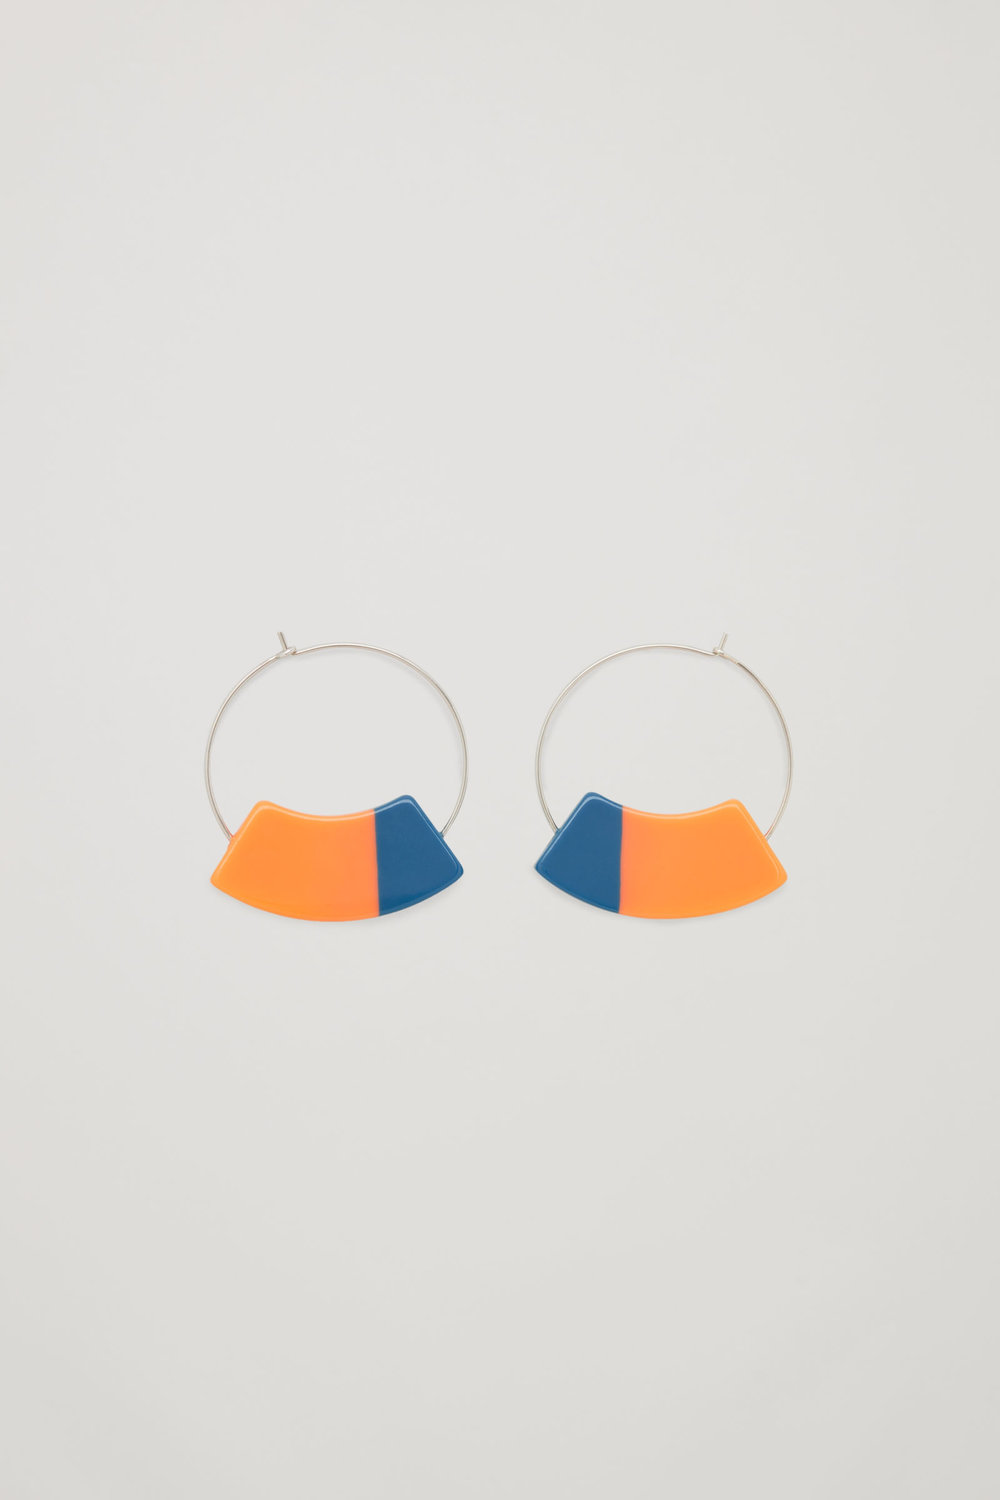 - COS / Colour-Block Hoops